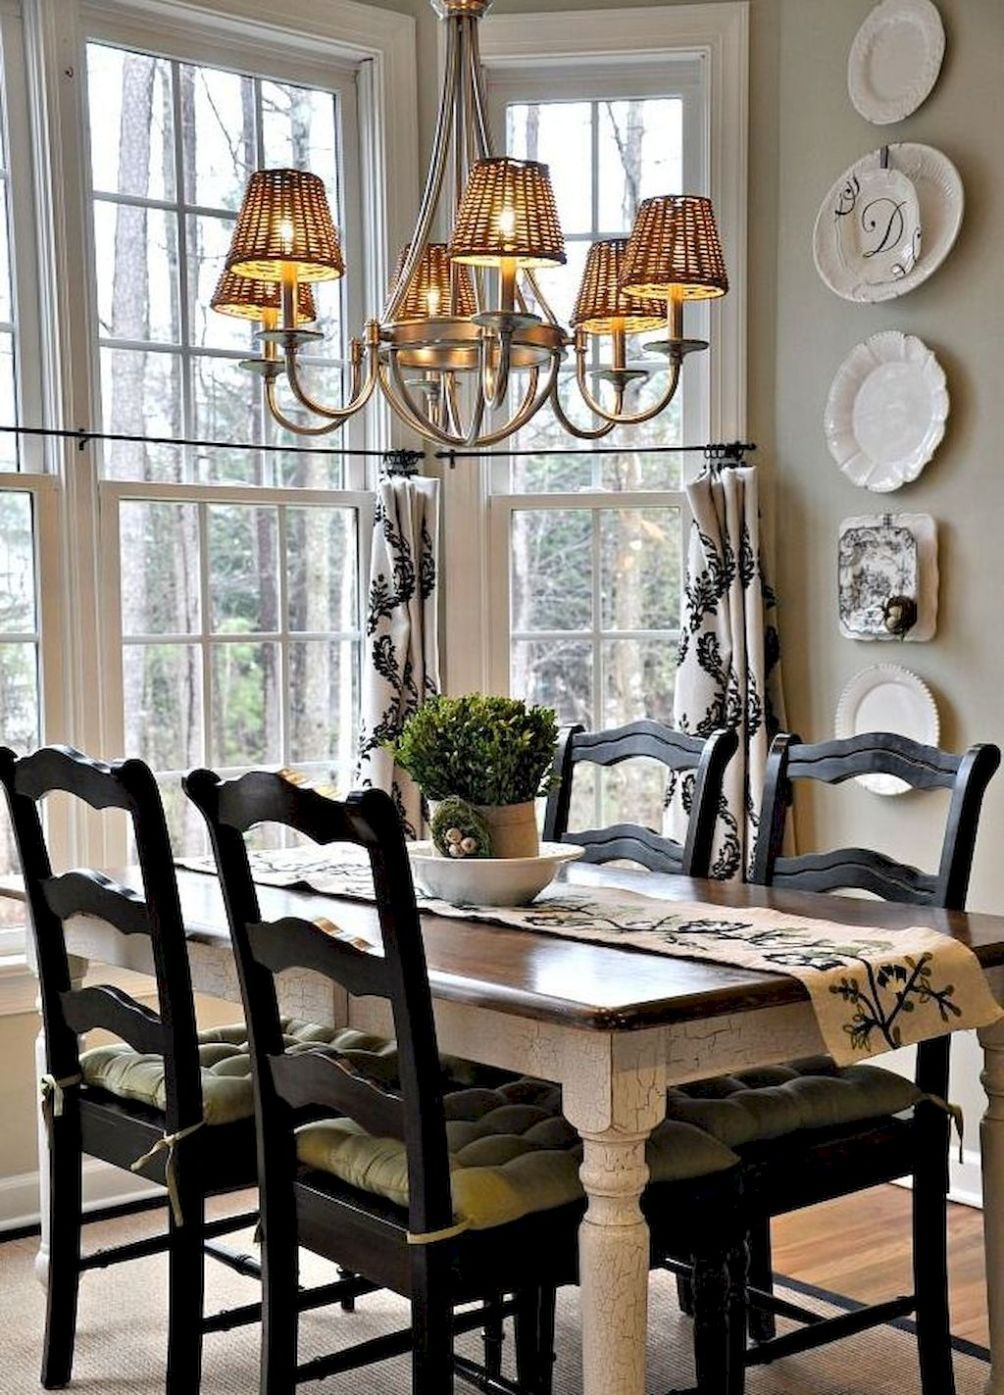 57 Awesome French Country Dining Room Decor